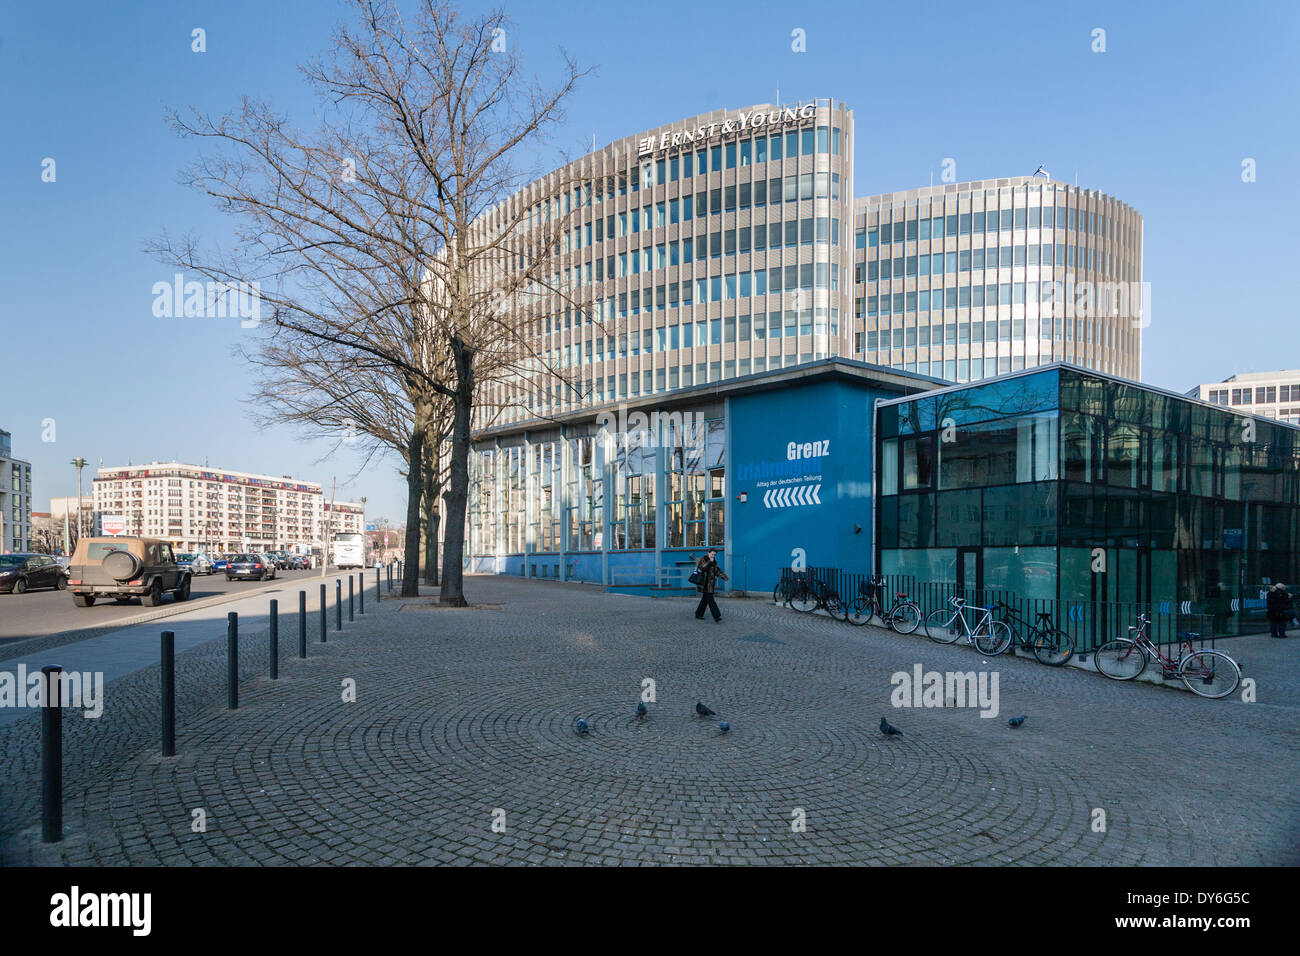 Palace of Tears, former border crossing, Berlin, Germany - Stock Image